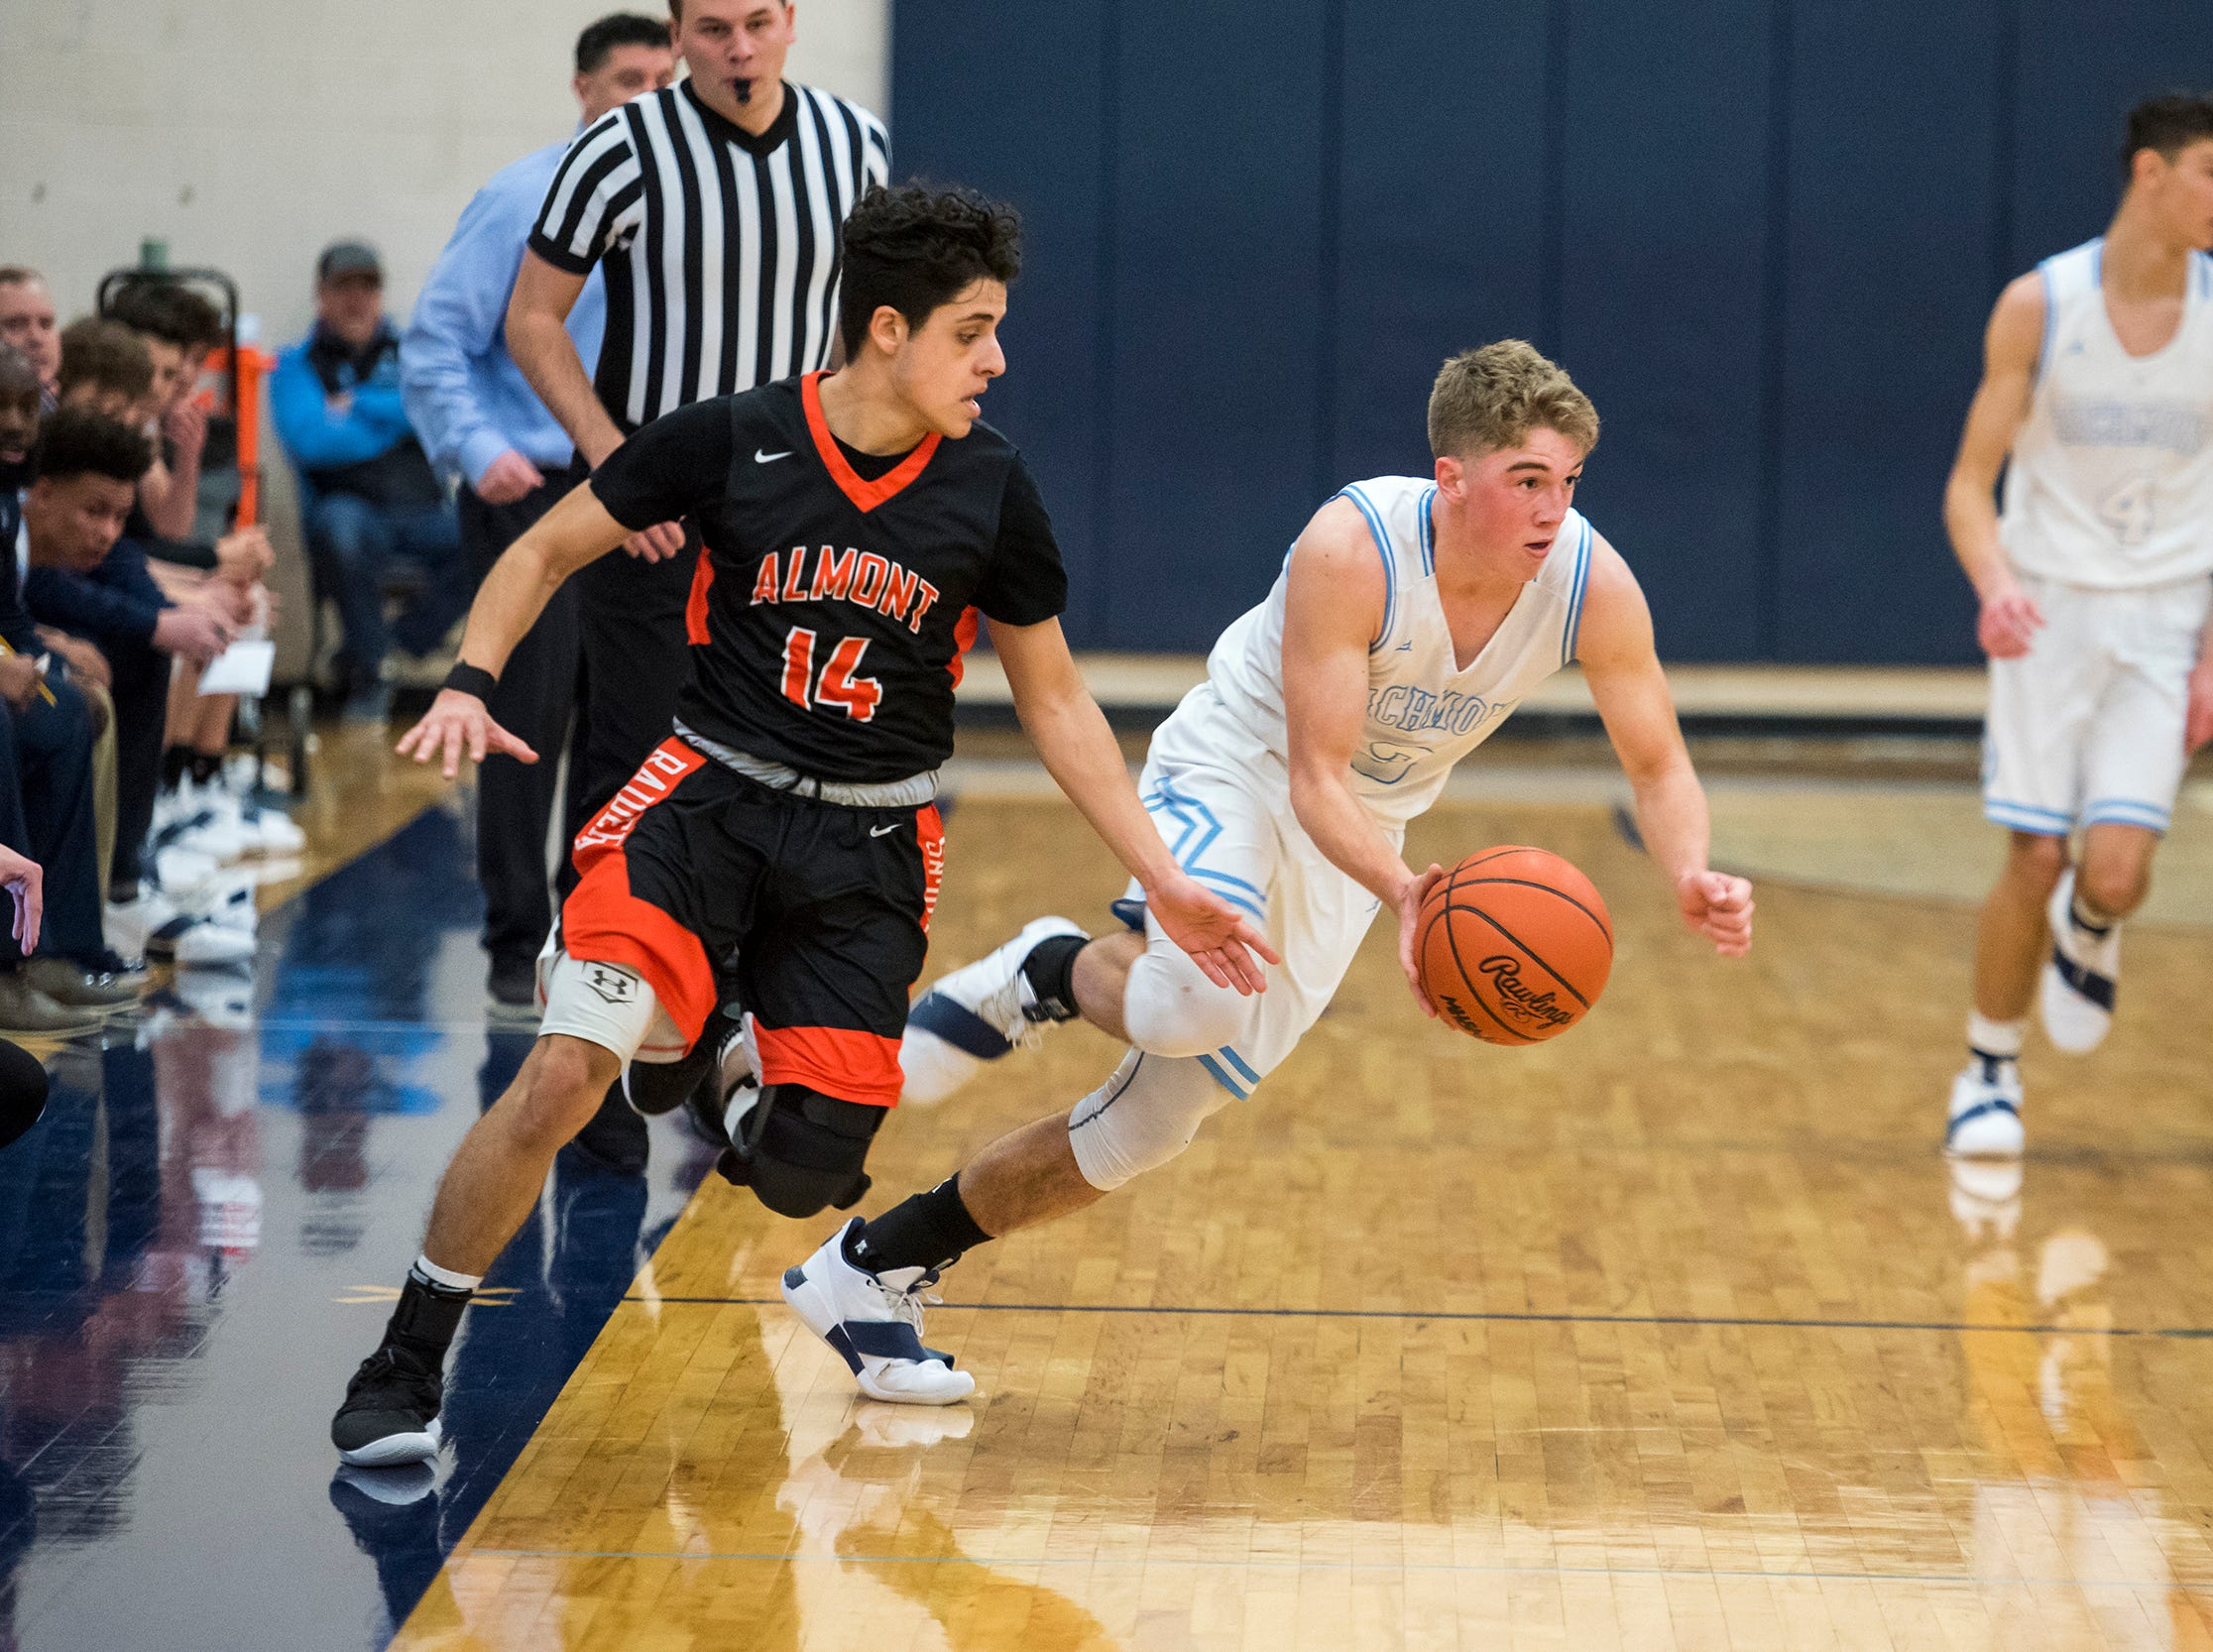 Richmond guard Jackson Allen (right) runs with the ball away from Almont High School guard Rafael Farias after recovering it during their basketball game Friday, Feb. 15, 2019 at Richmond High School.